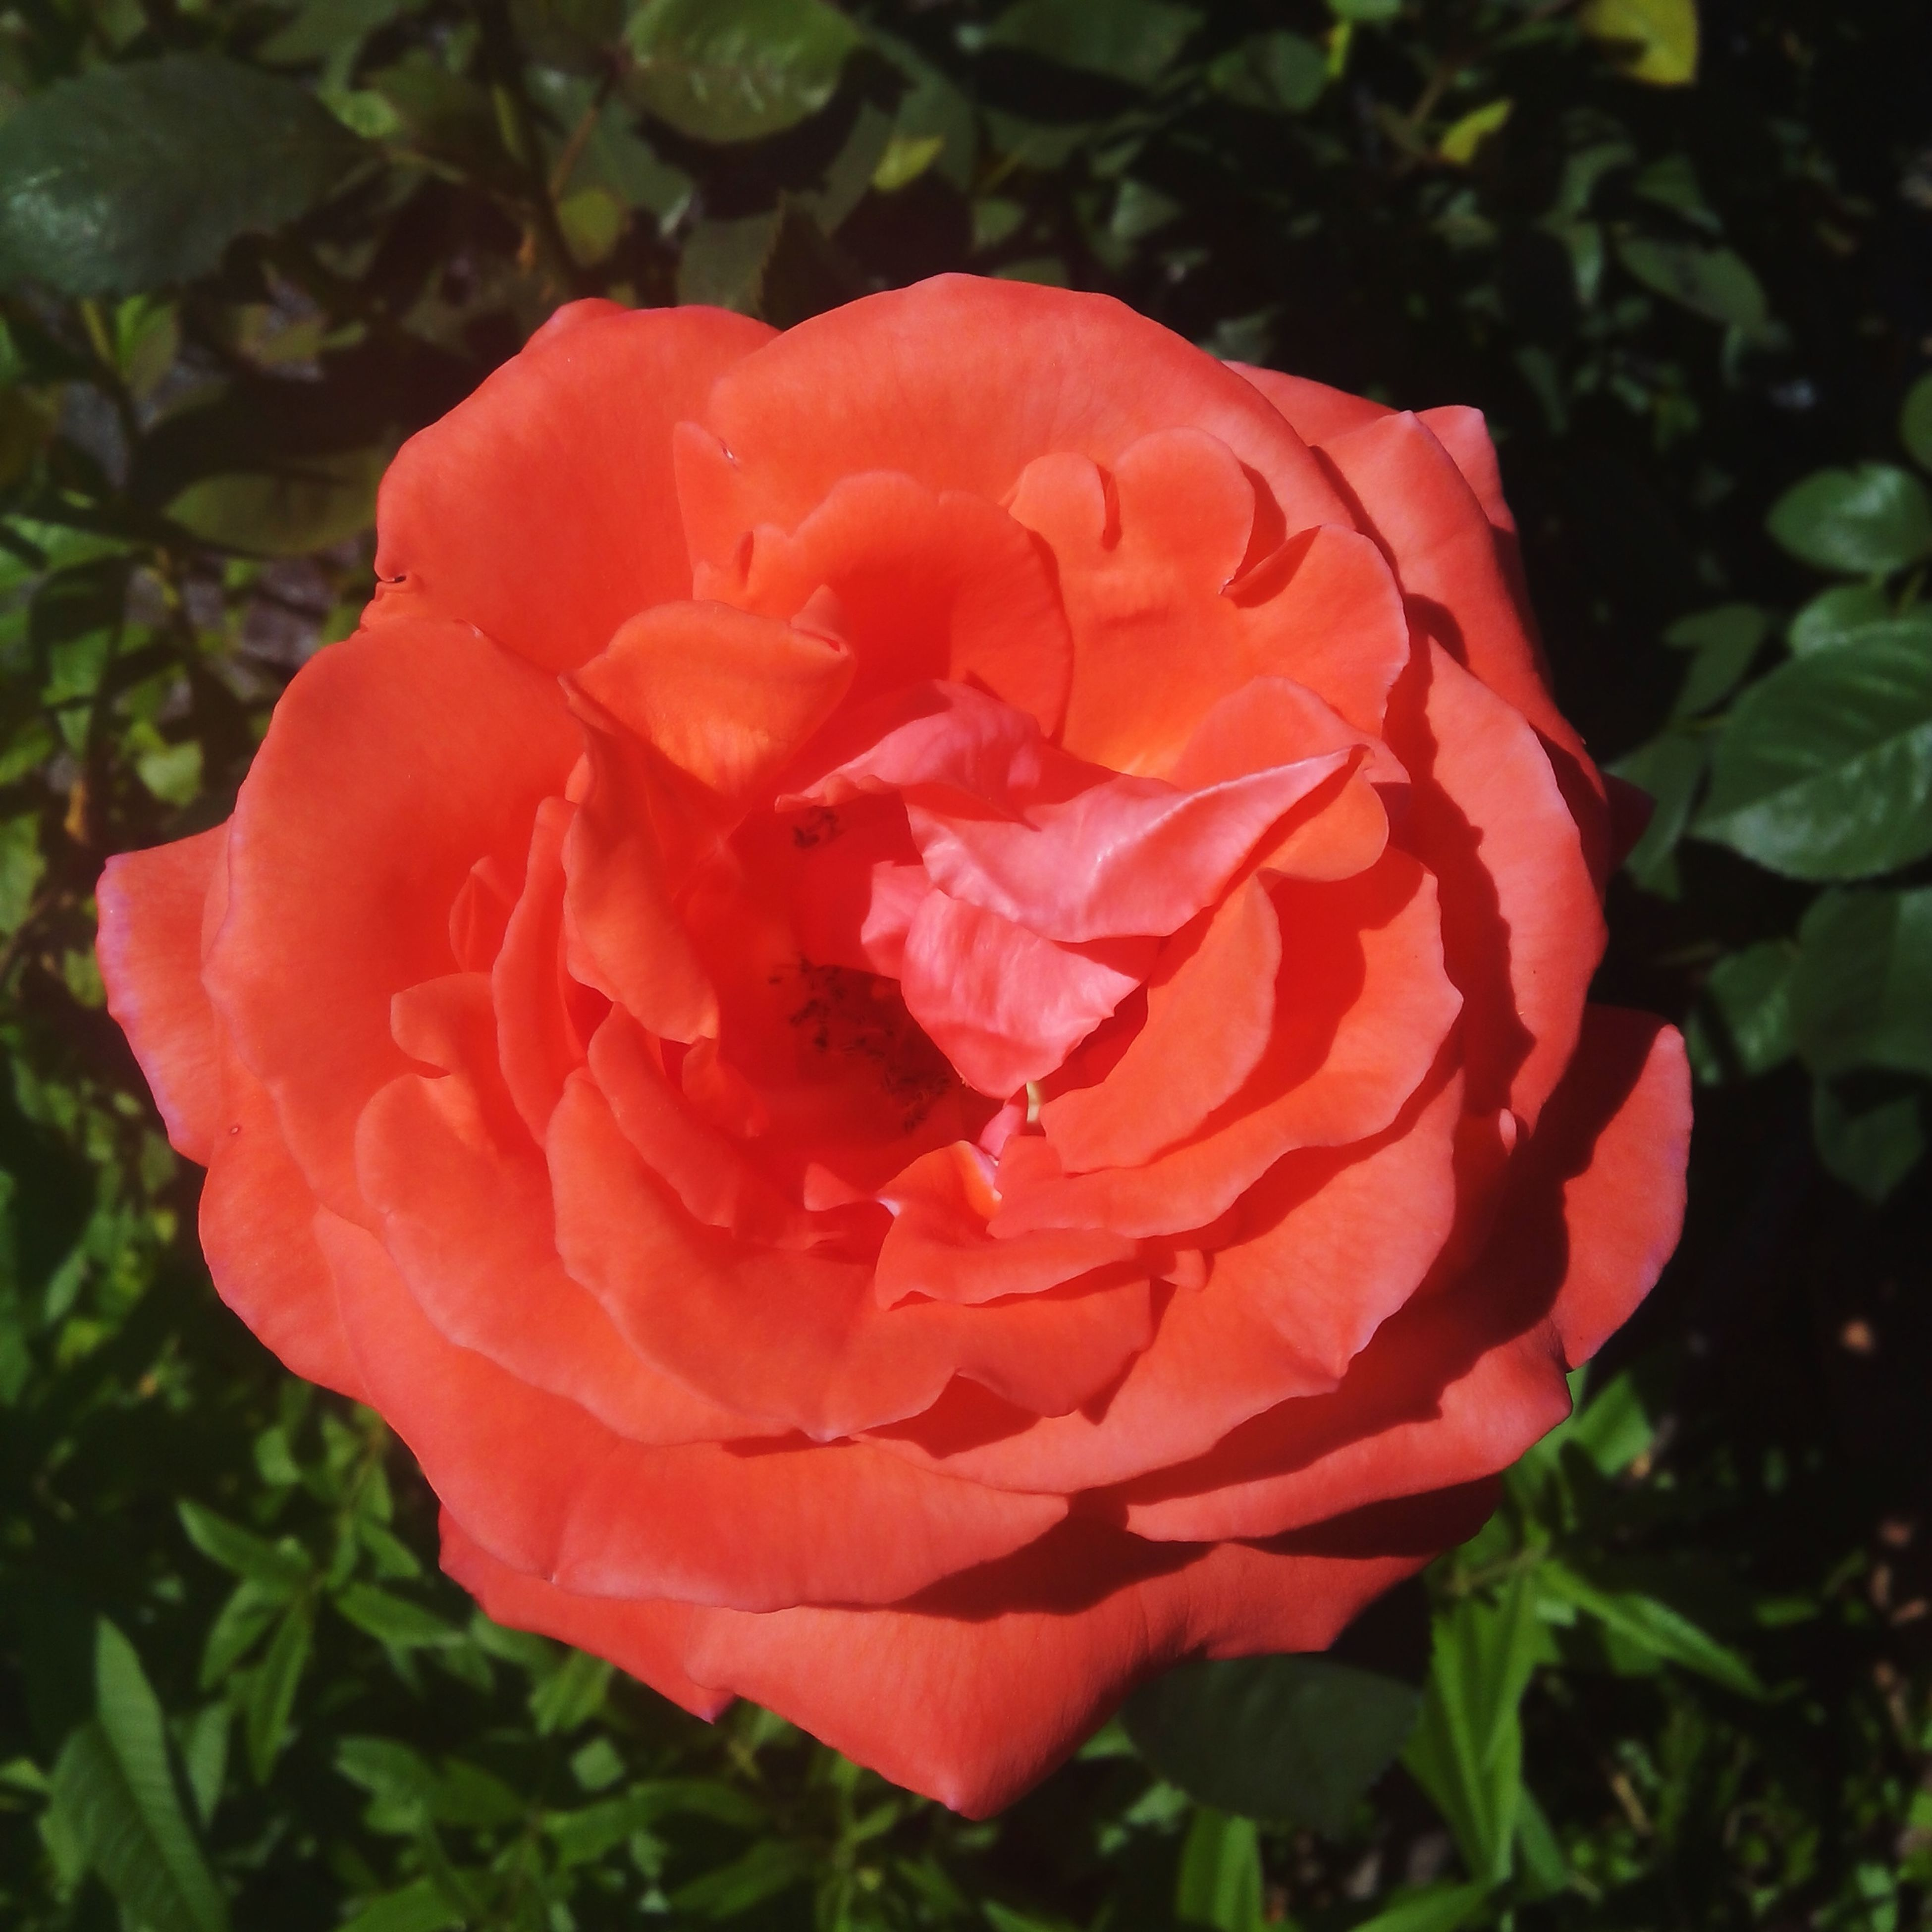 flower, petal, freshness, flower head, fragility, growth, beauty in nature, red, blooming, rose - flower, close-up, single flower, plant, nature, leaf, focus on foreground, in bloom, day, rose, outdoors